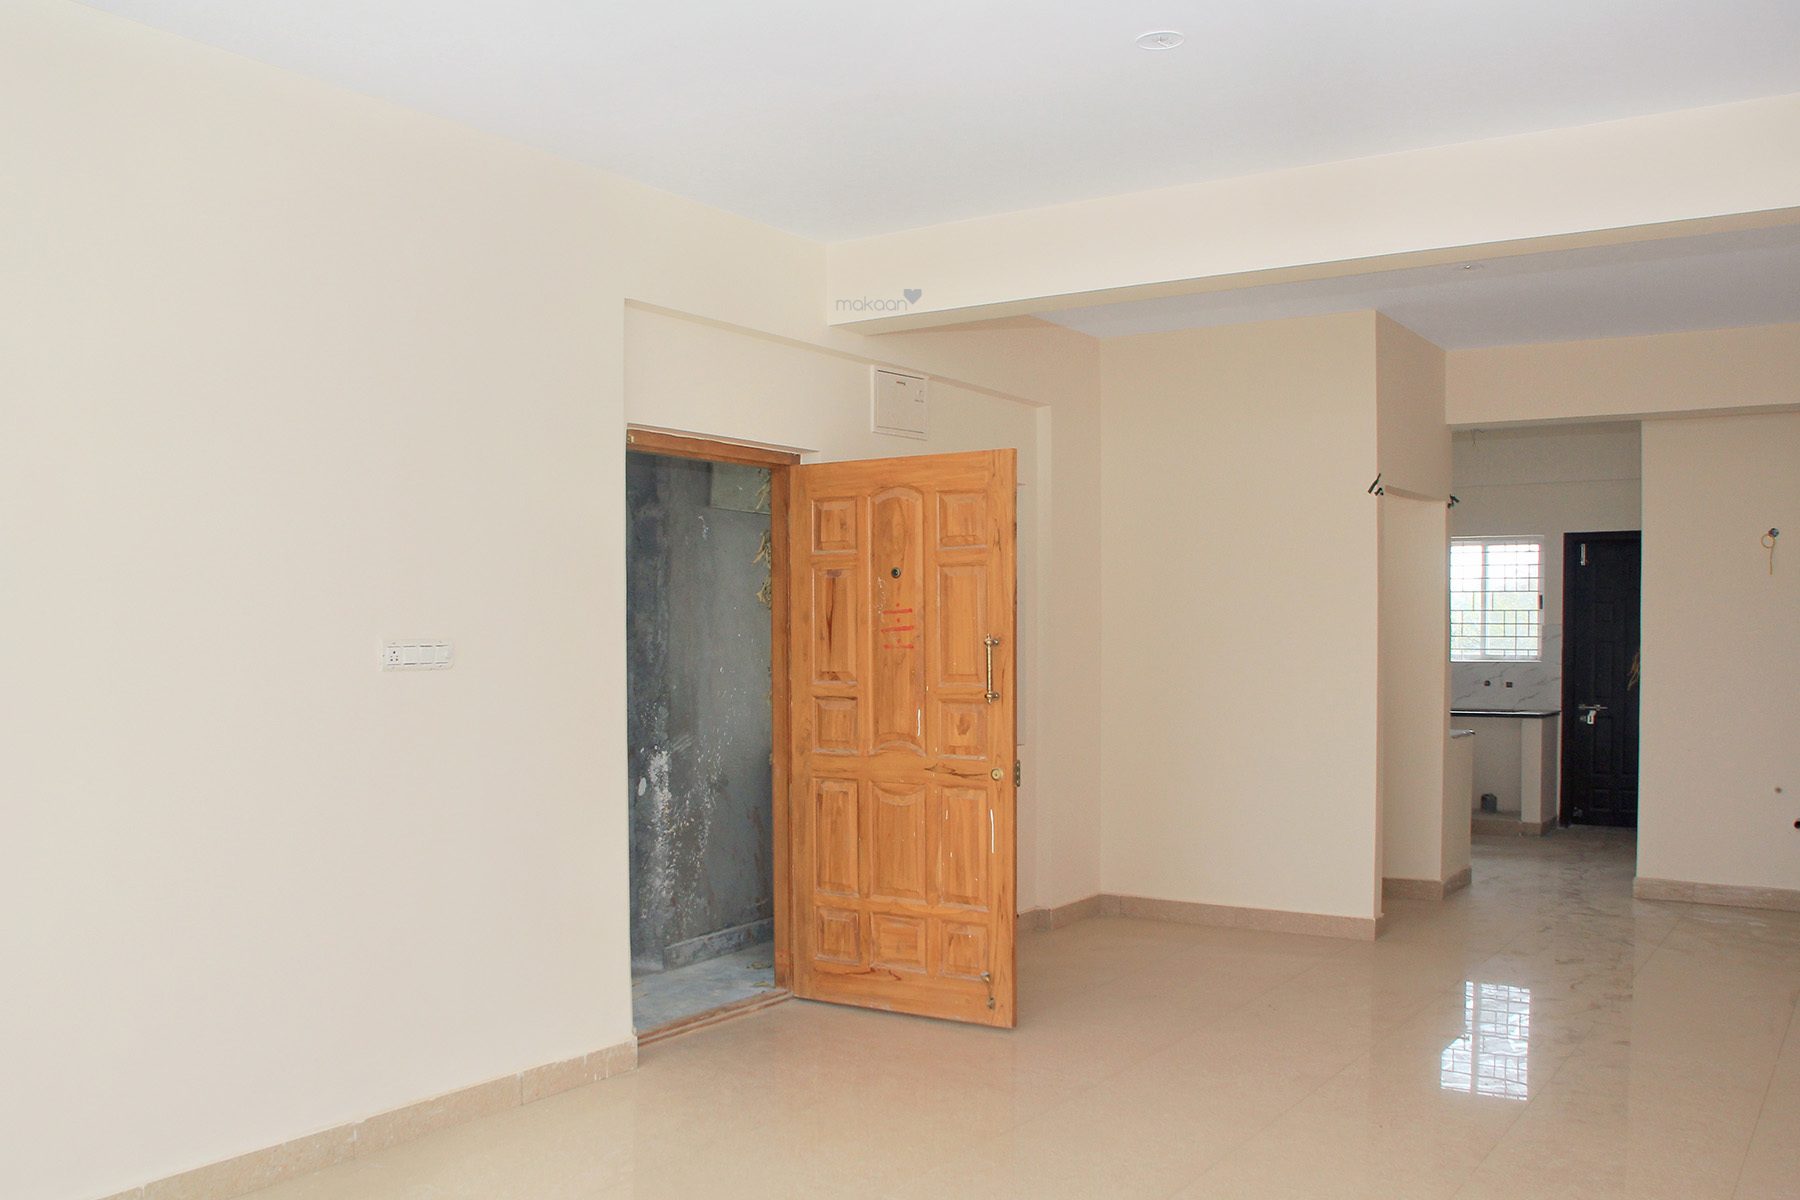 1664 sq ft 3BHK 3BHK+2T (1,664 sq ft)   Pooja Room Property By Proptiger In Bliss, Varthur